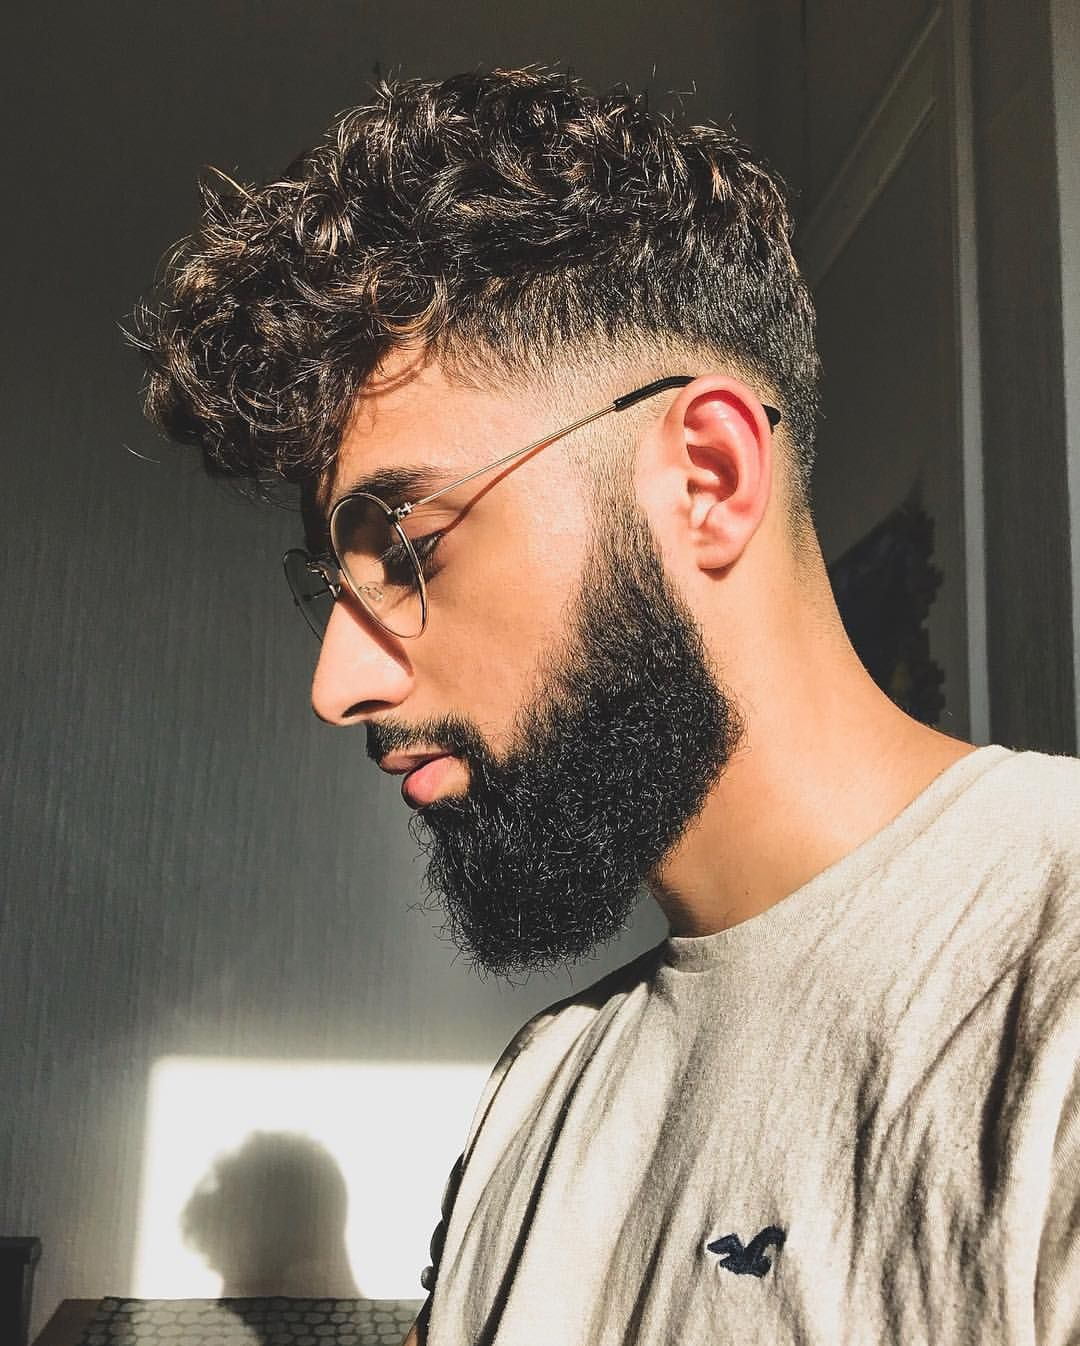 83 Likes 6 Comments Dany Tauseef Danytauseef On Instagram Saturday Curls Coiffure Homme Cheveux Boucles Coiffures Pour Homme Frise Coupe Cheveux Homme